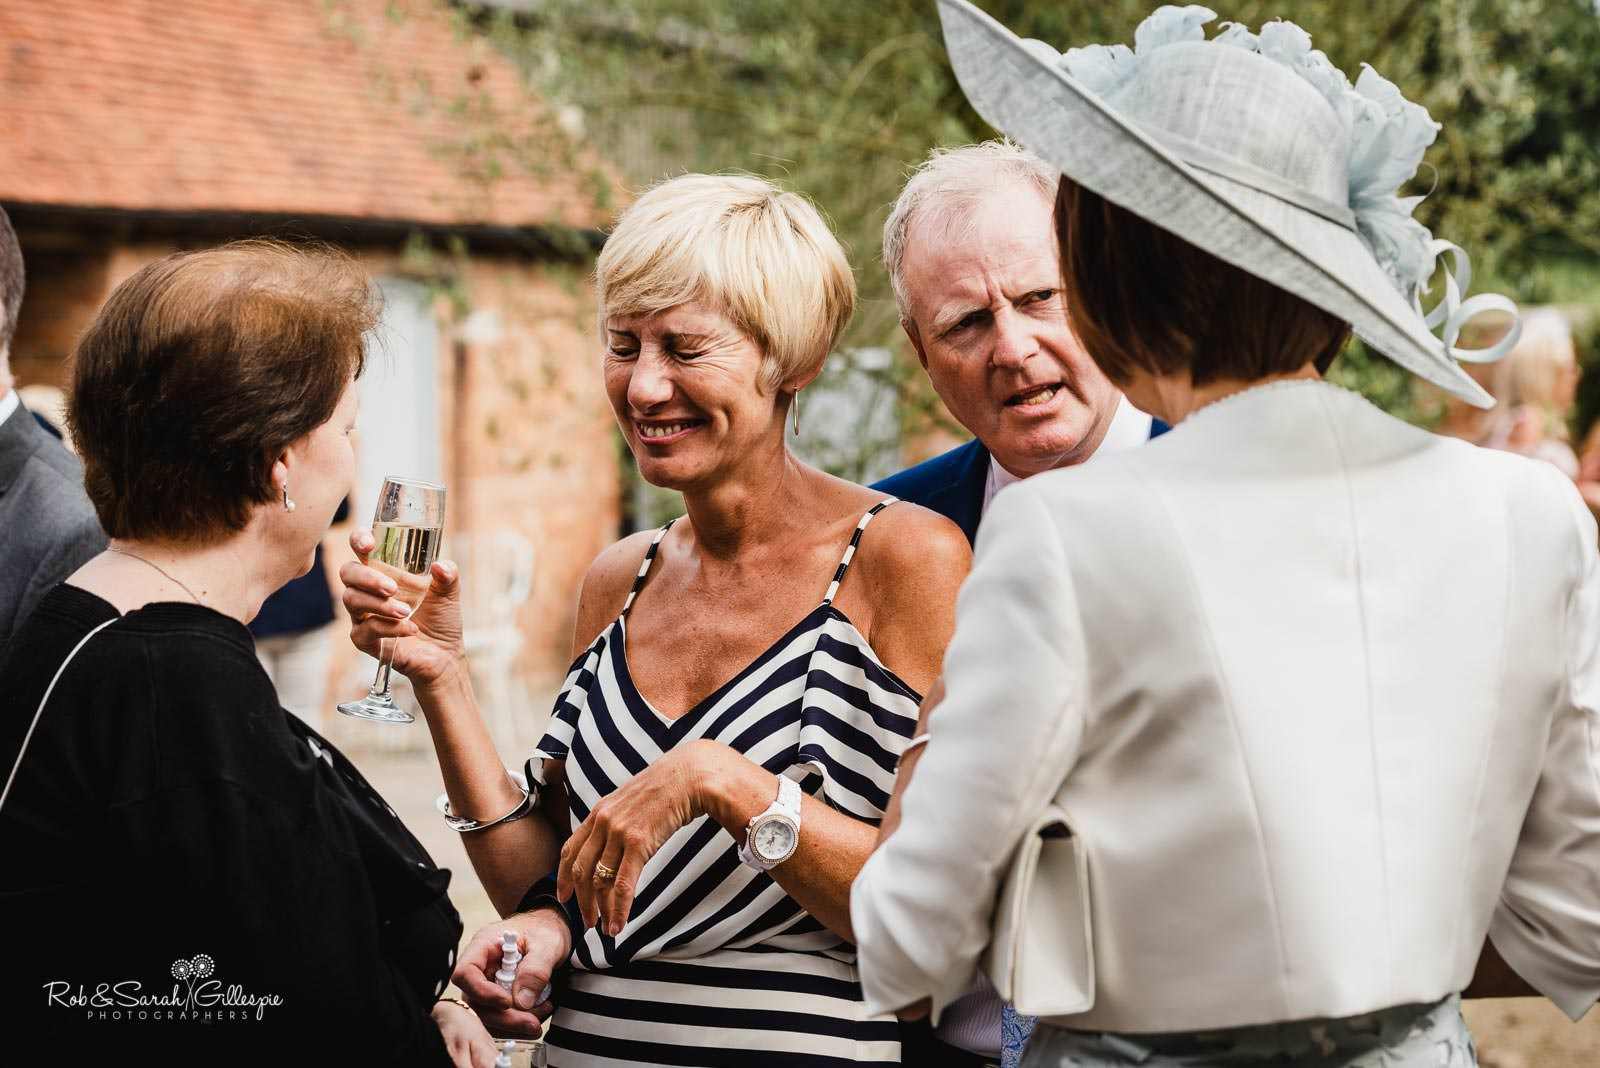 Wedding guests relax during drinks reception at Swallows Nest Barn